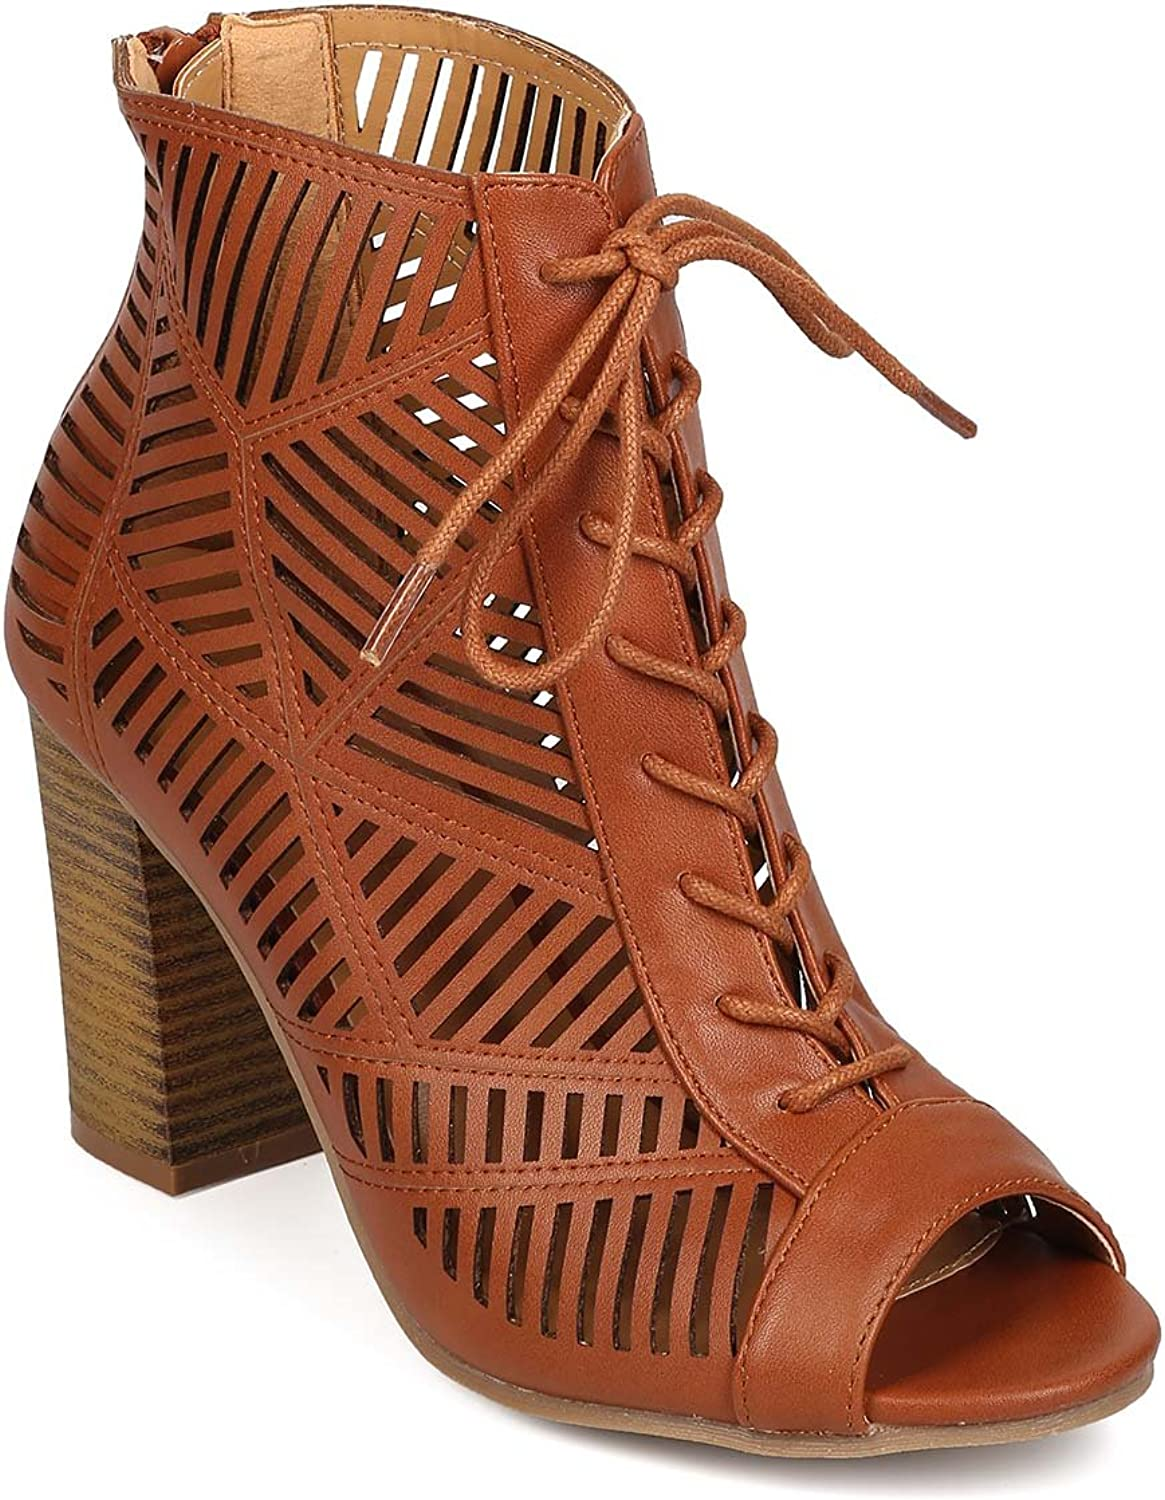 Wild Diva Women Leatherette Peep Toe Lace Up Hollow Out Block Heel Bootie EG90 - Whiskey